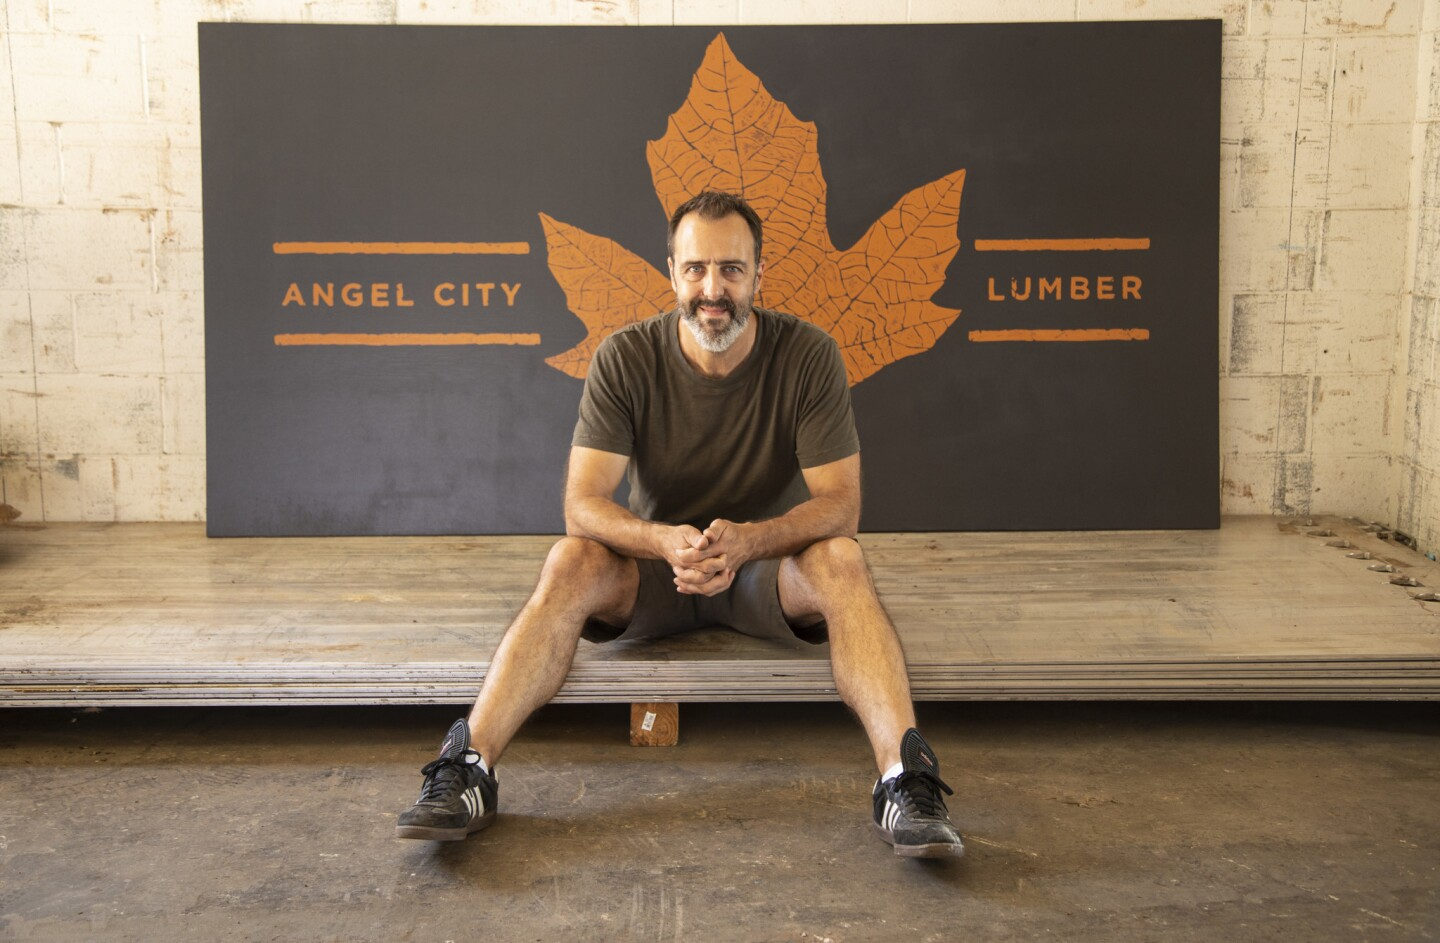 Charles DeRosa is co-owner of Angel City Lumber, which recovers downed trees across L.A. and processes them into lumber. Designers and furniture makers frequent the business.